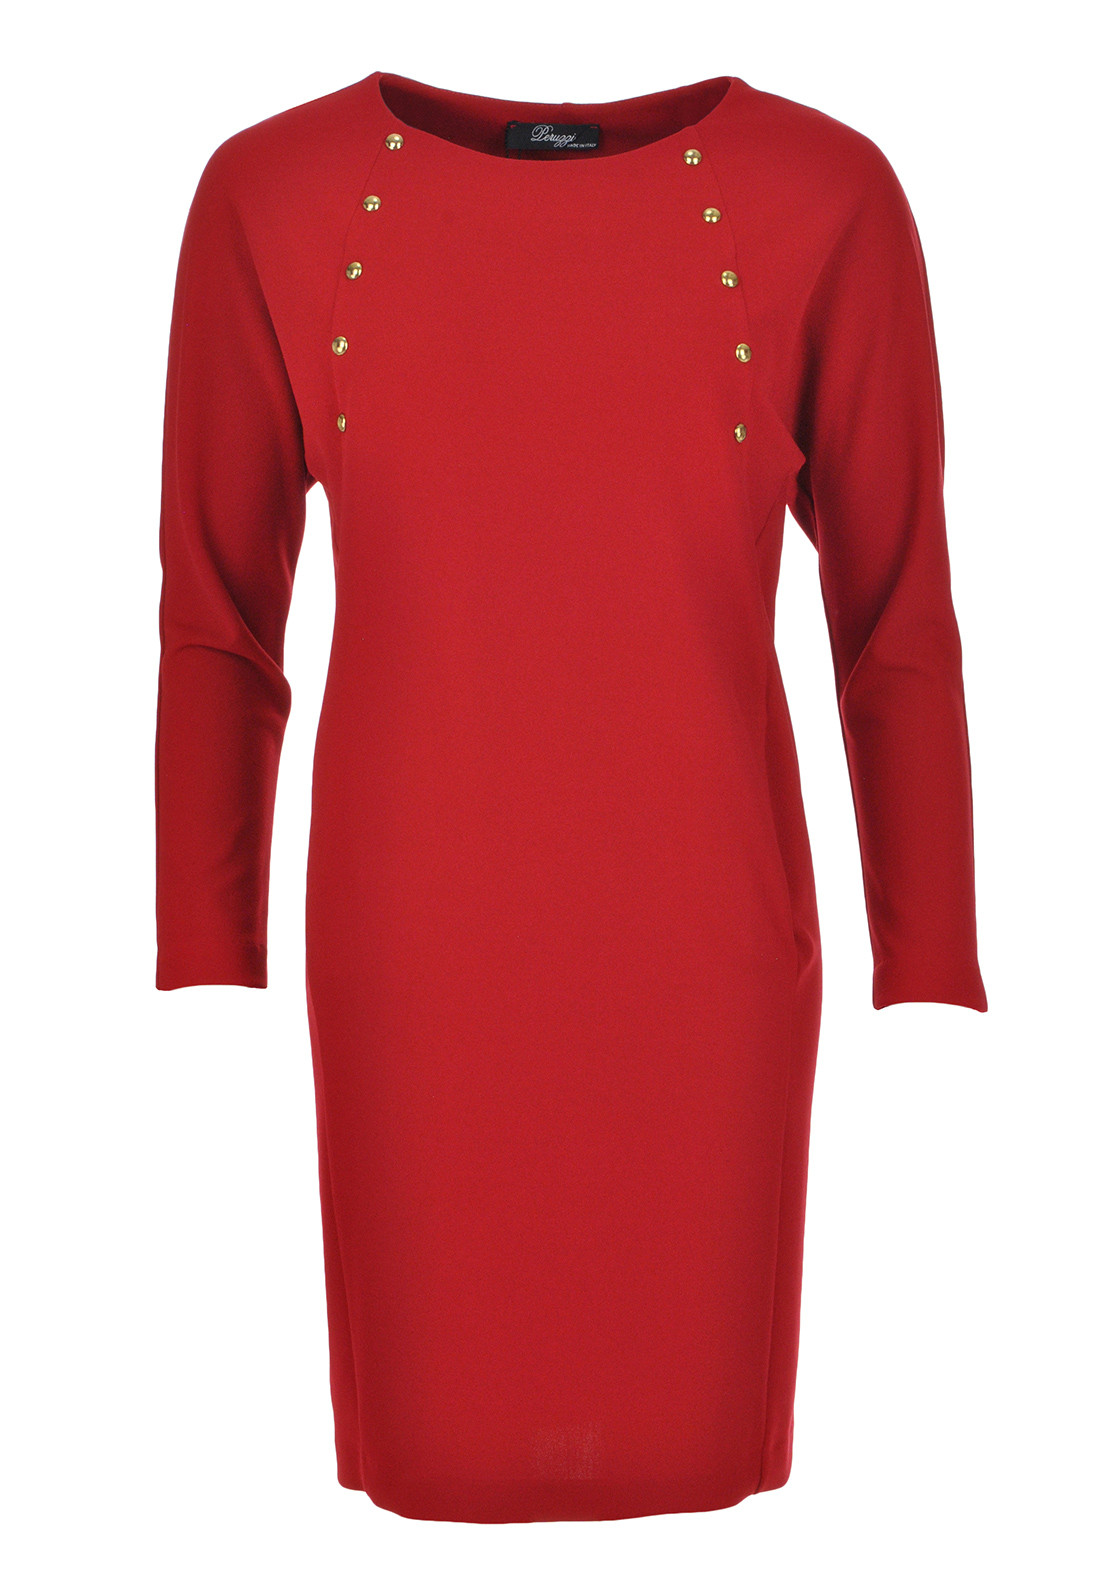 Peruzzi Studded Long Sleeve Tunic Dress, Red